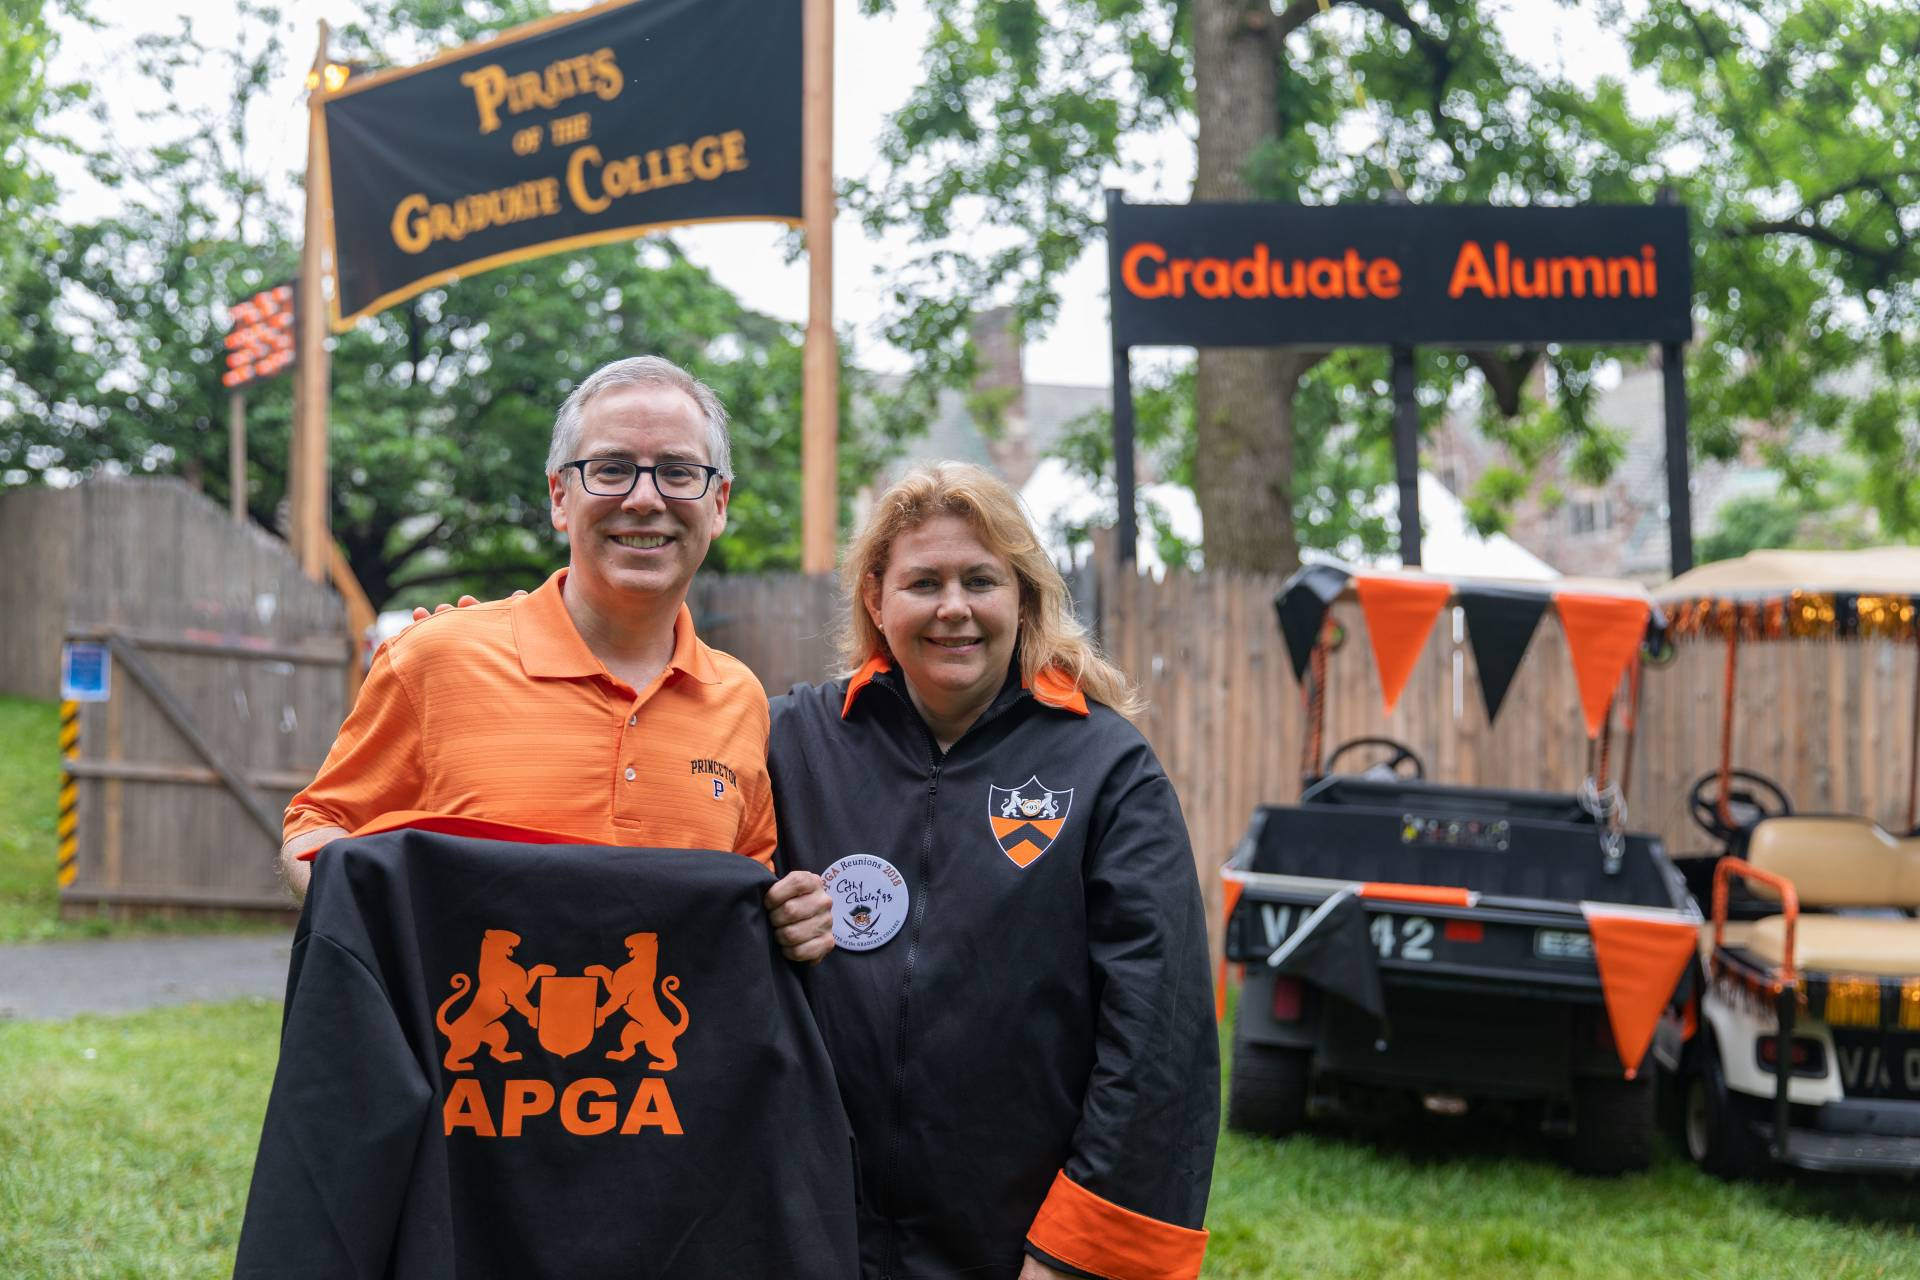 John Cuniff *88  and Cathy Carsley *93 standing outside Graduate Alumni reunion headquarters